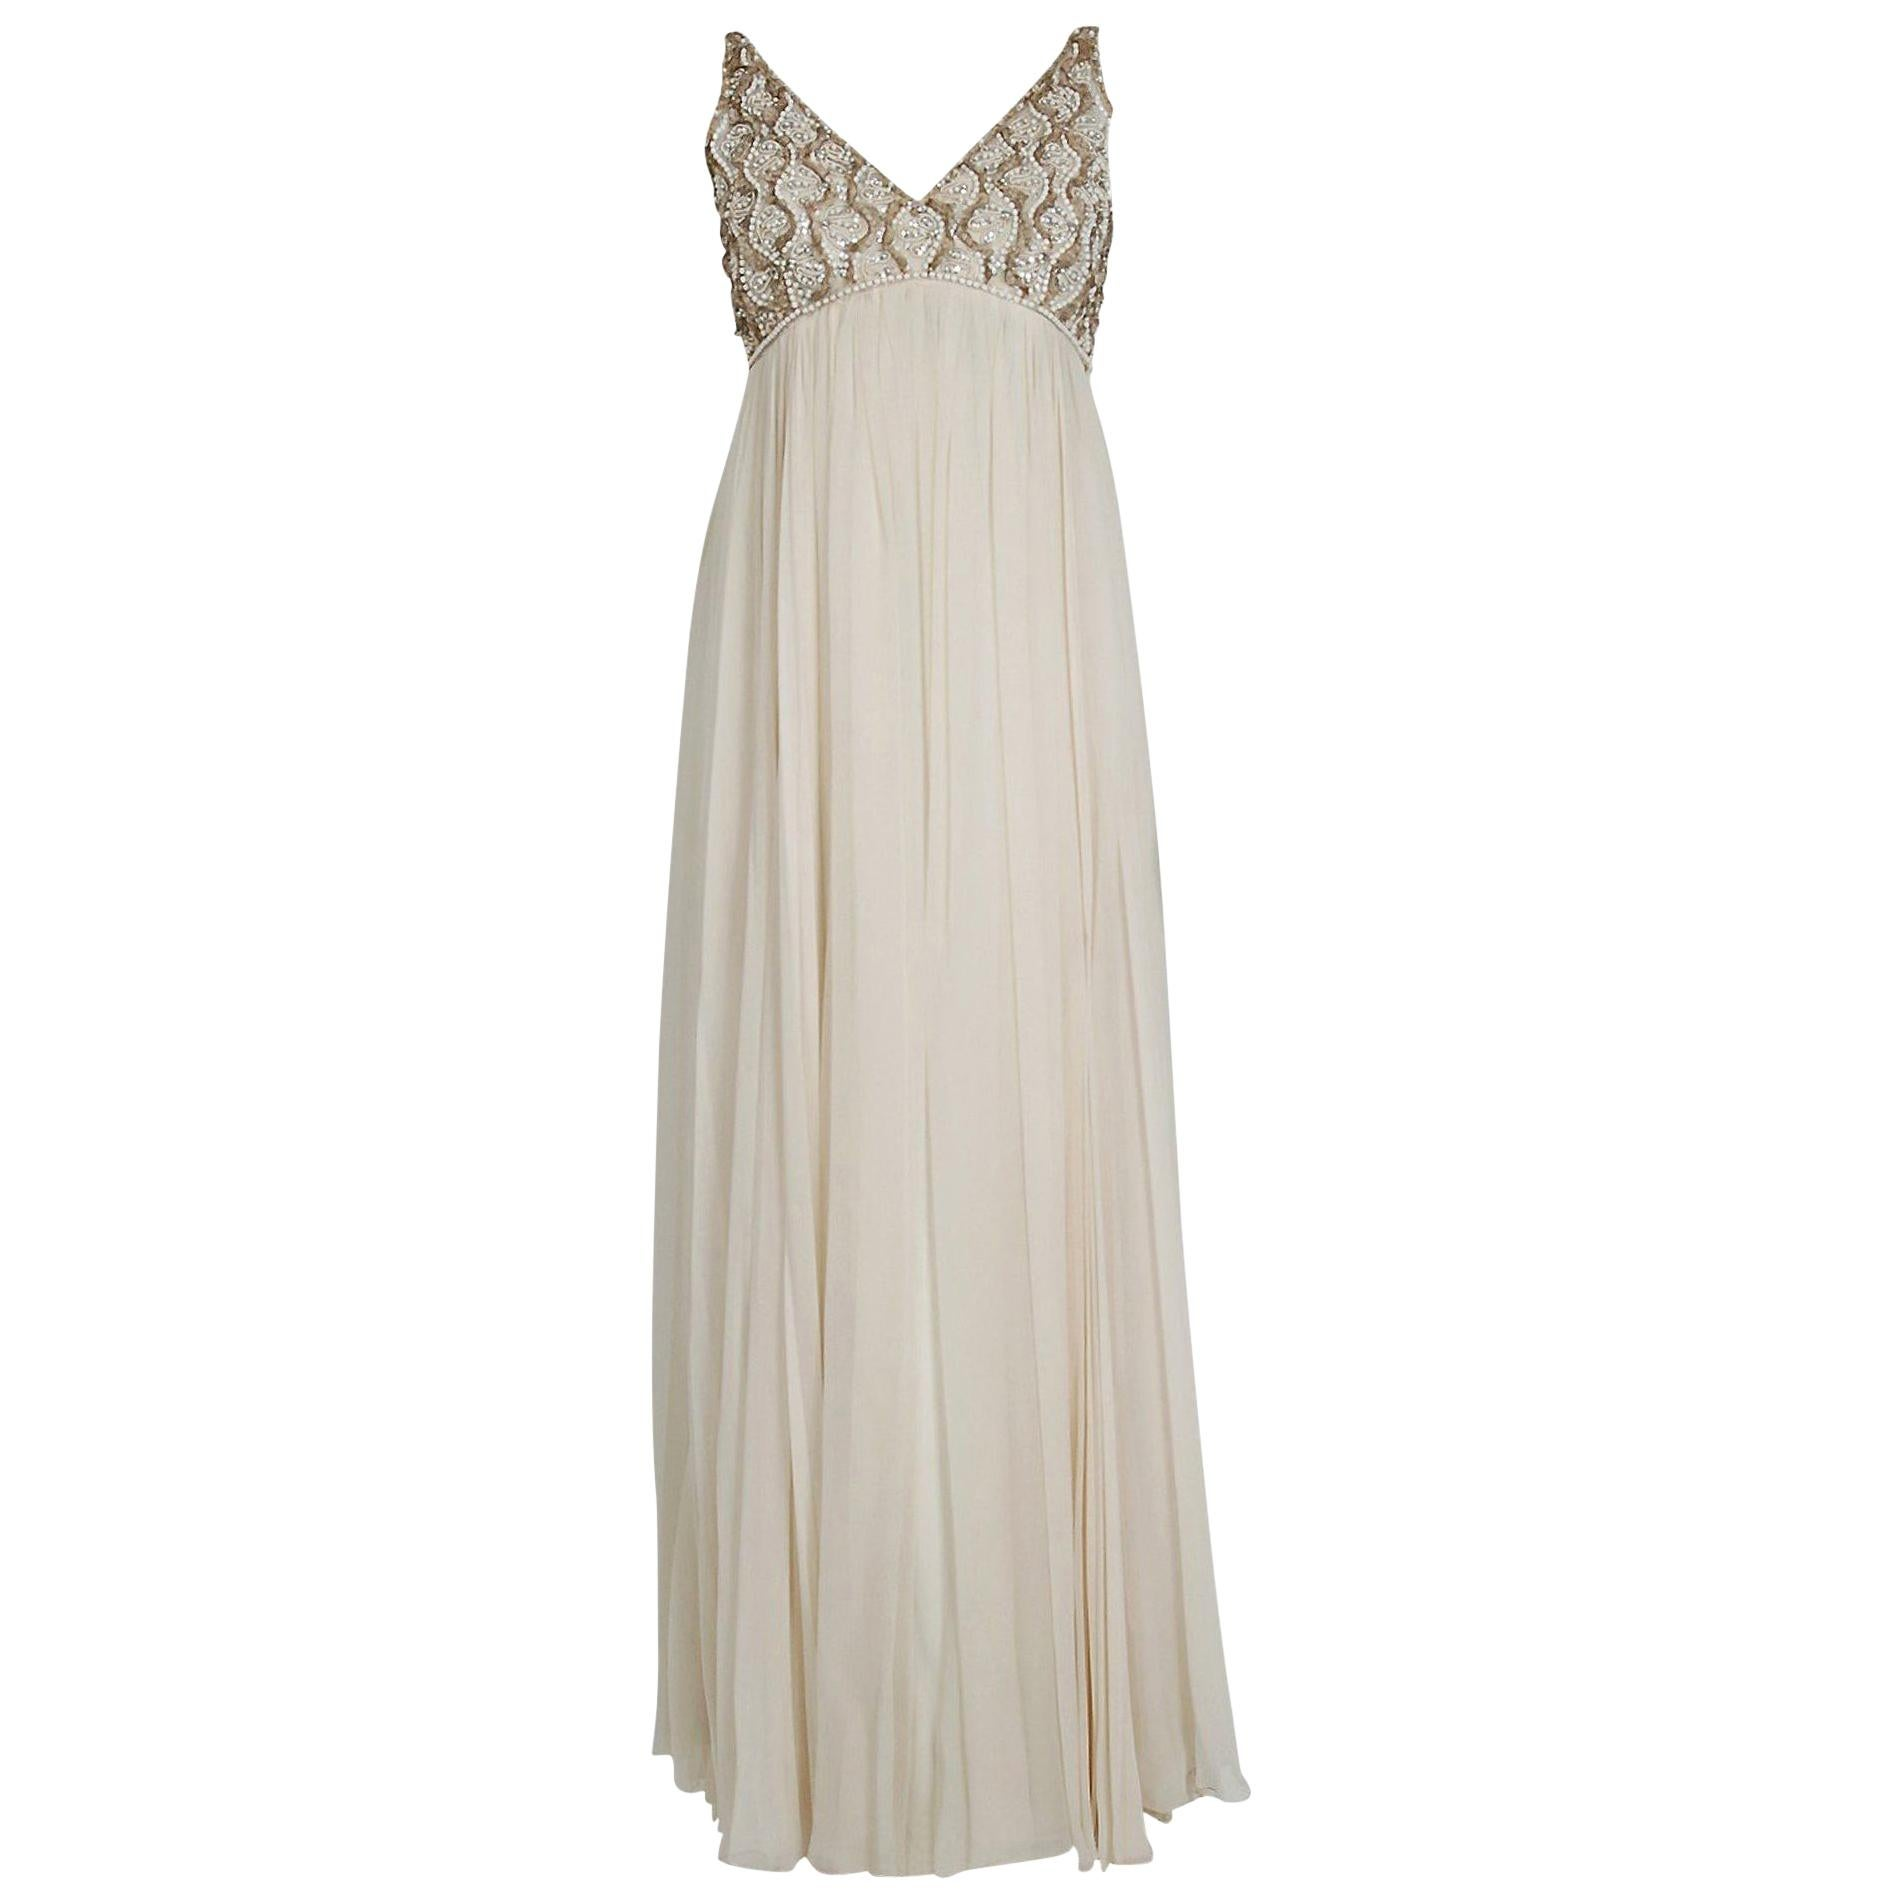 Vintage 1960's Malcolm Starr Beaded Ivory Chiffon Empire Goddess Bridal Gown